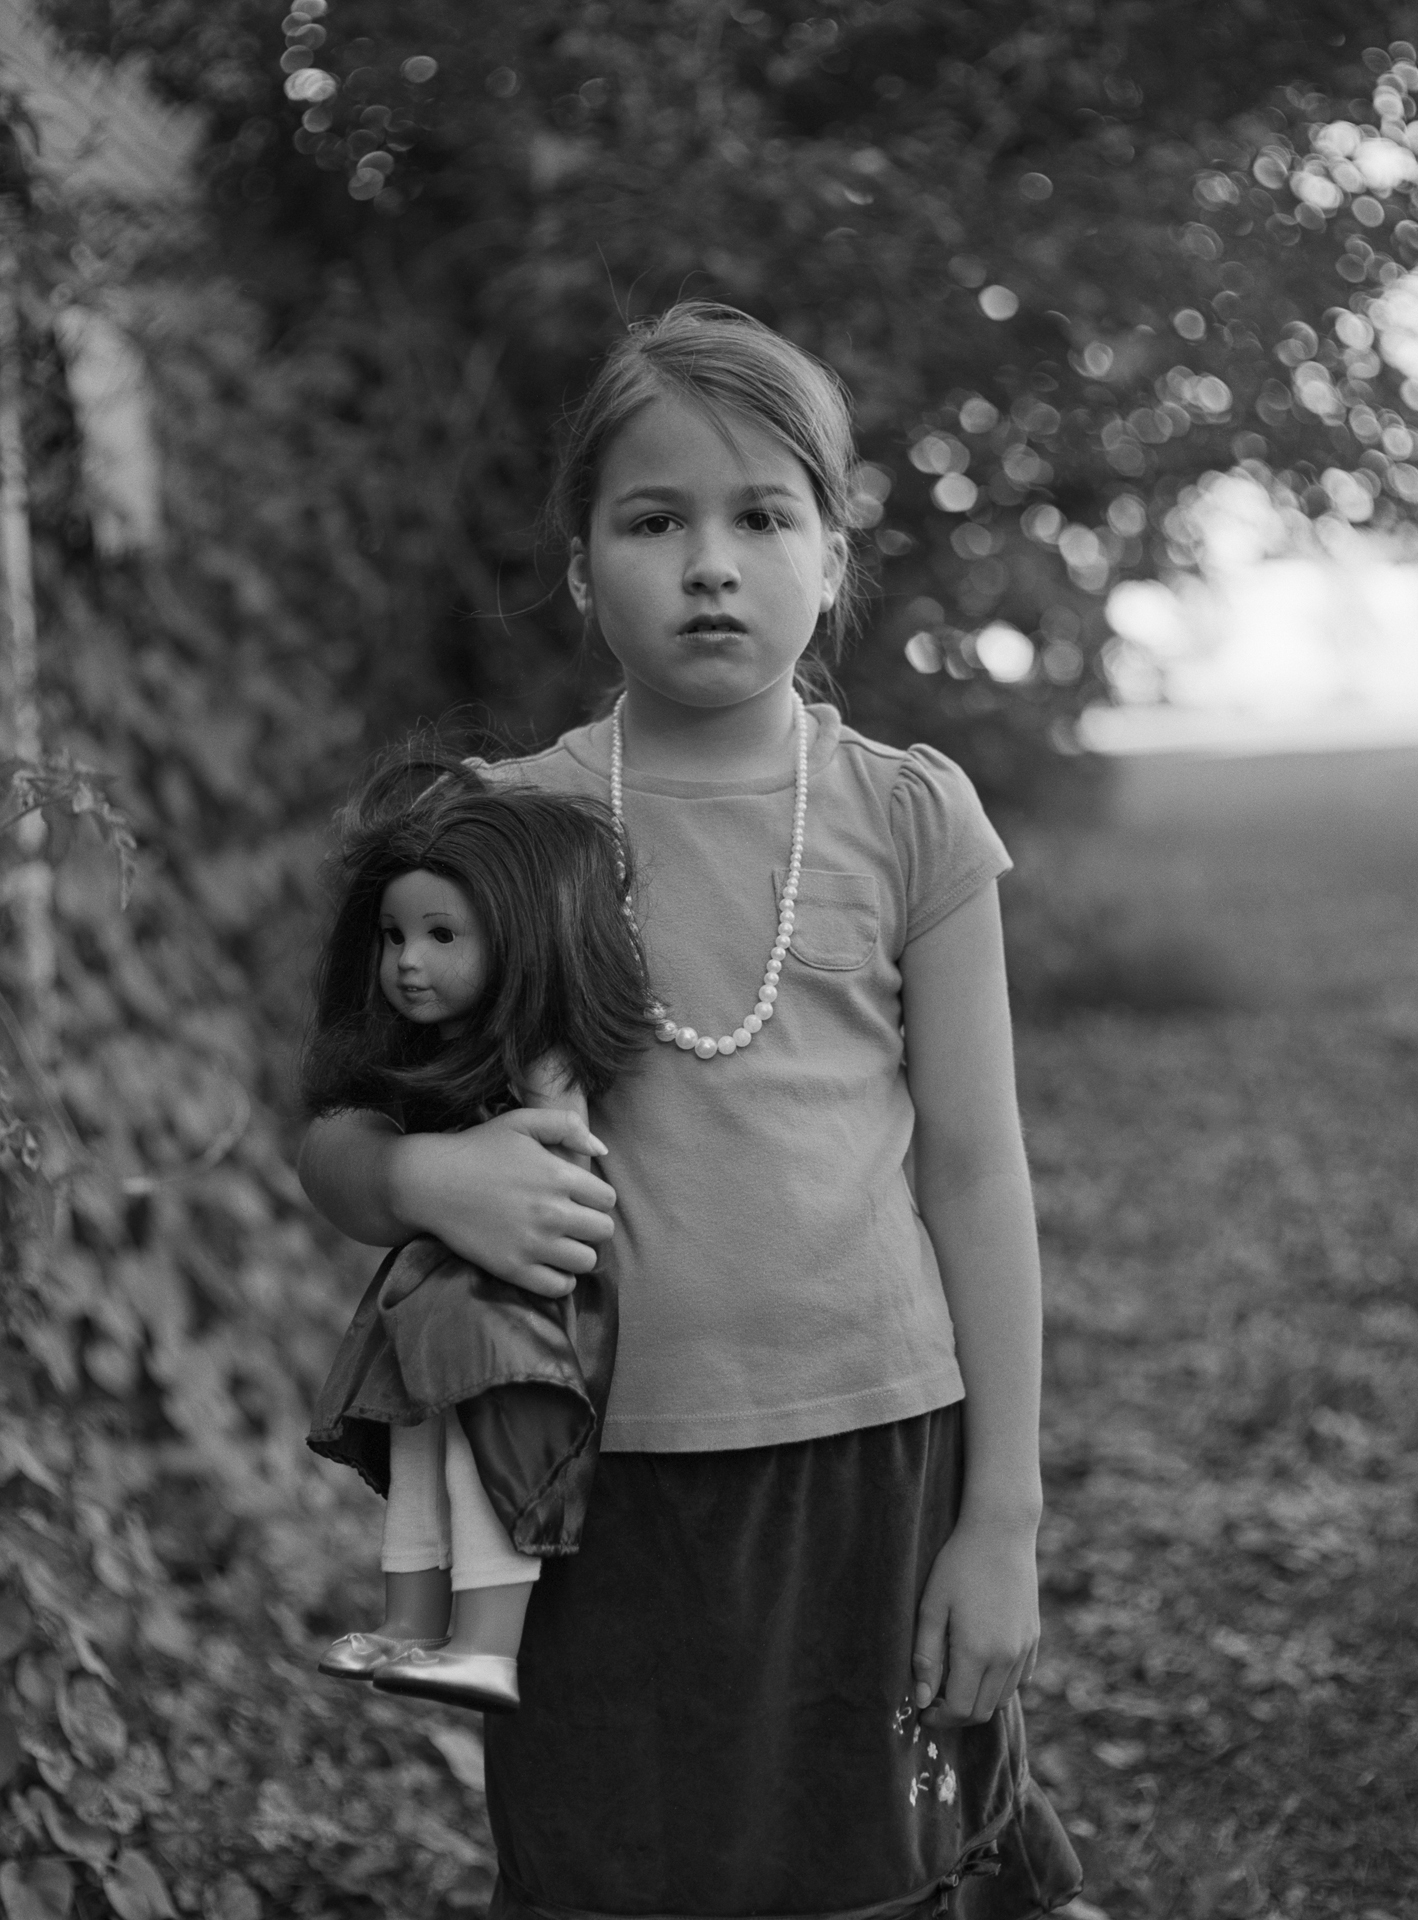 Girl With Doll, by Helene Macaulay. All rights reserved.